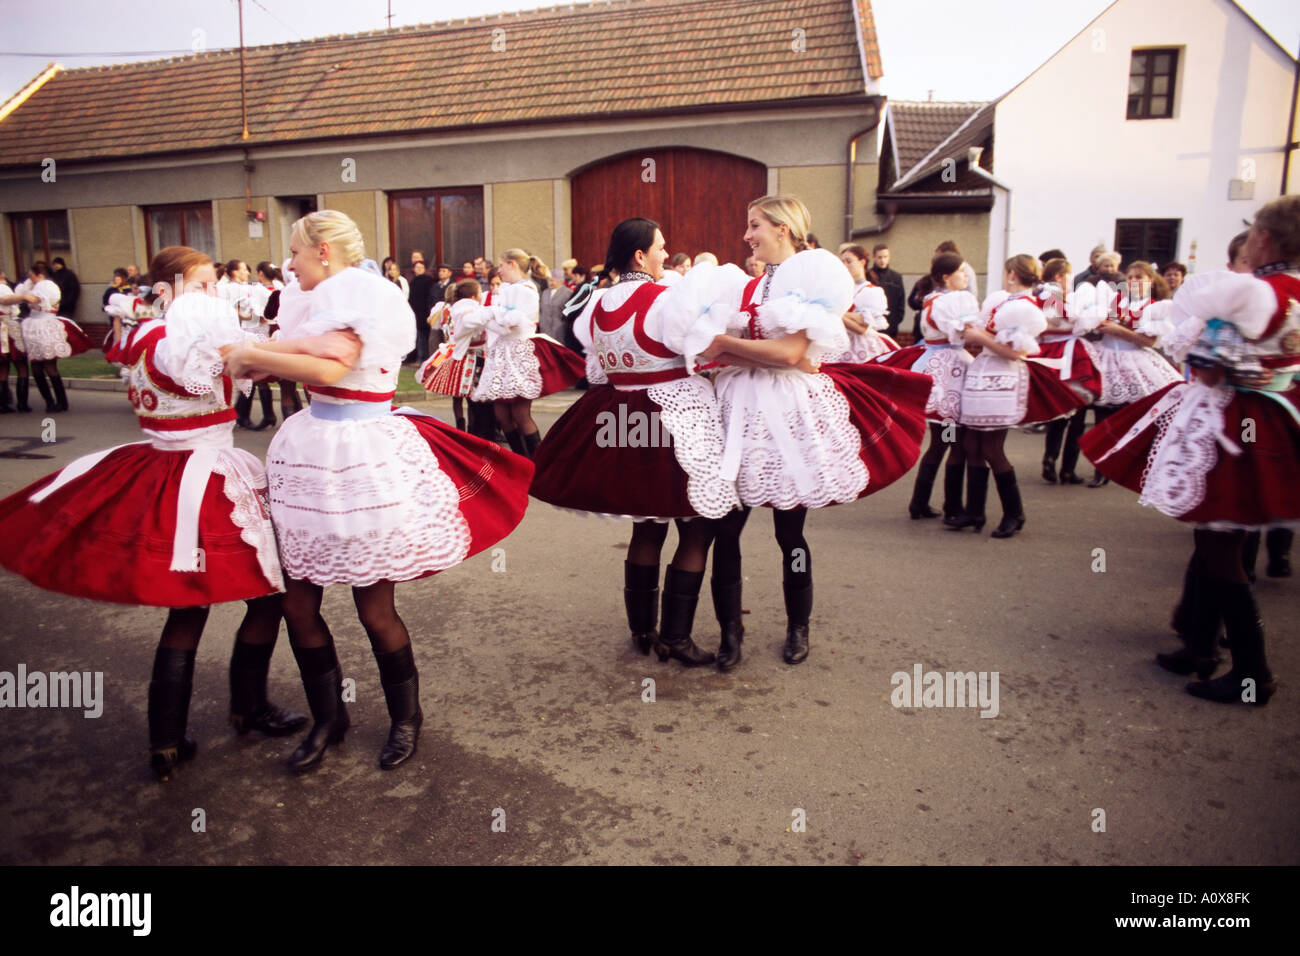 Girls dancing in traditional dress Dress Feast with Wreath and Duck Festival village of Skoronice Moravian Slovacko Stock Photo